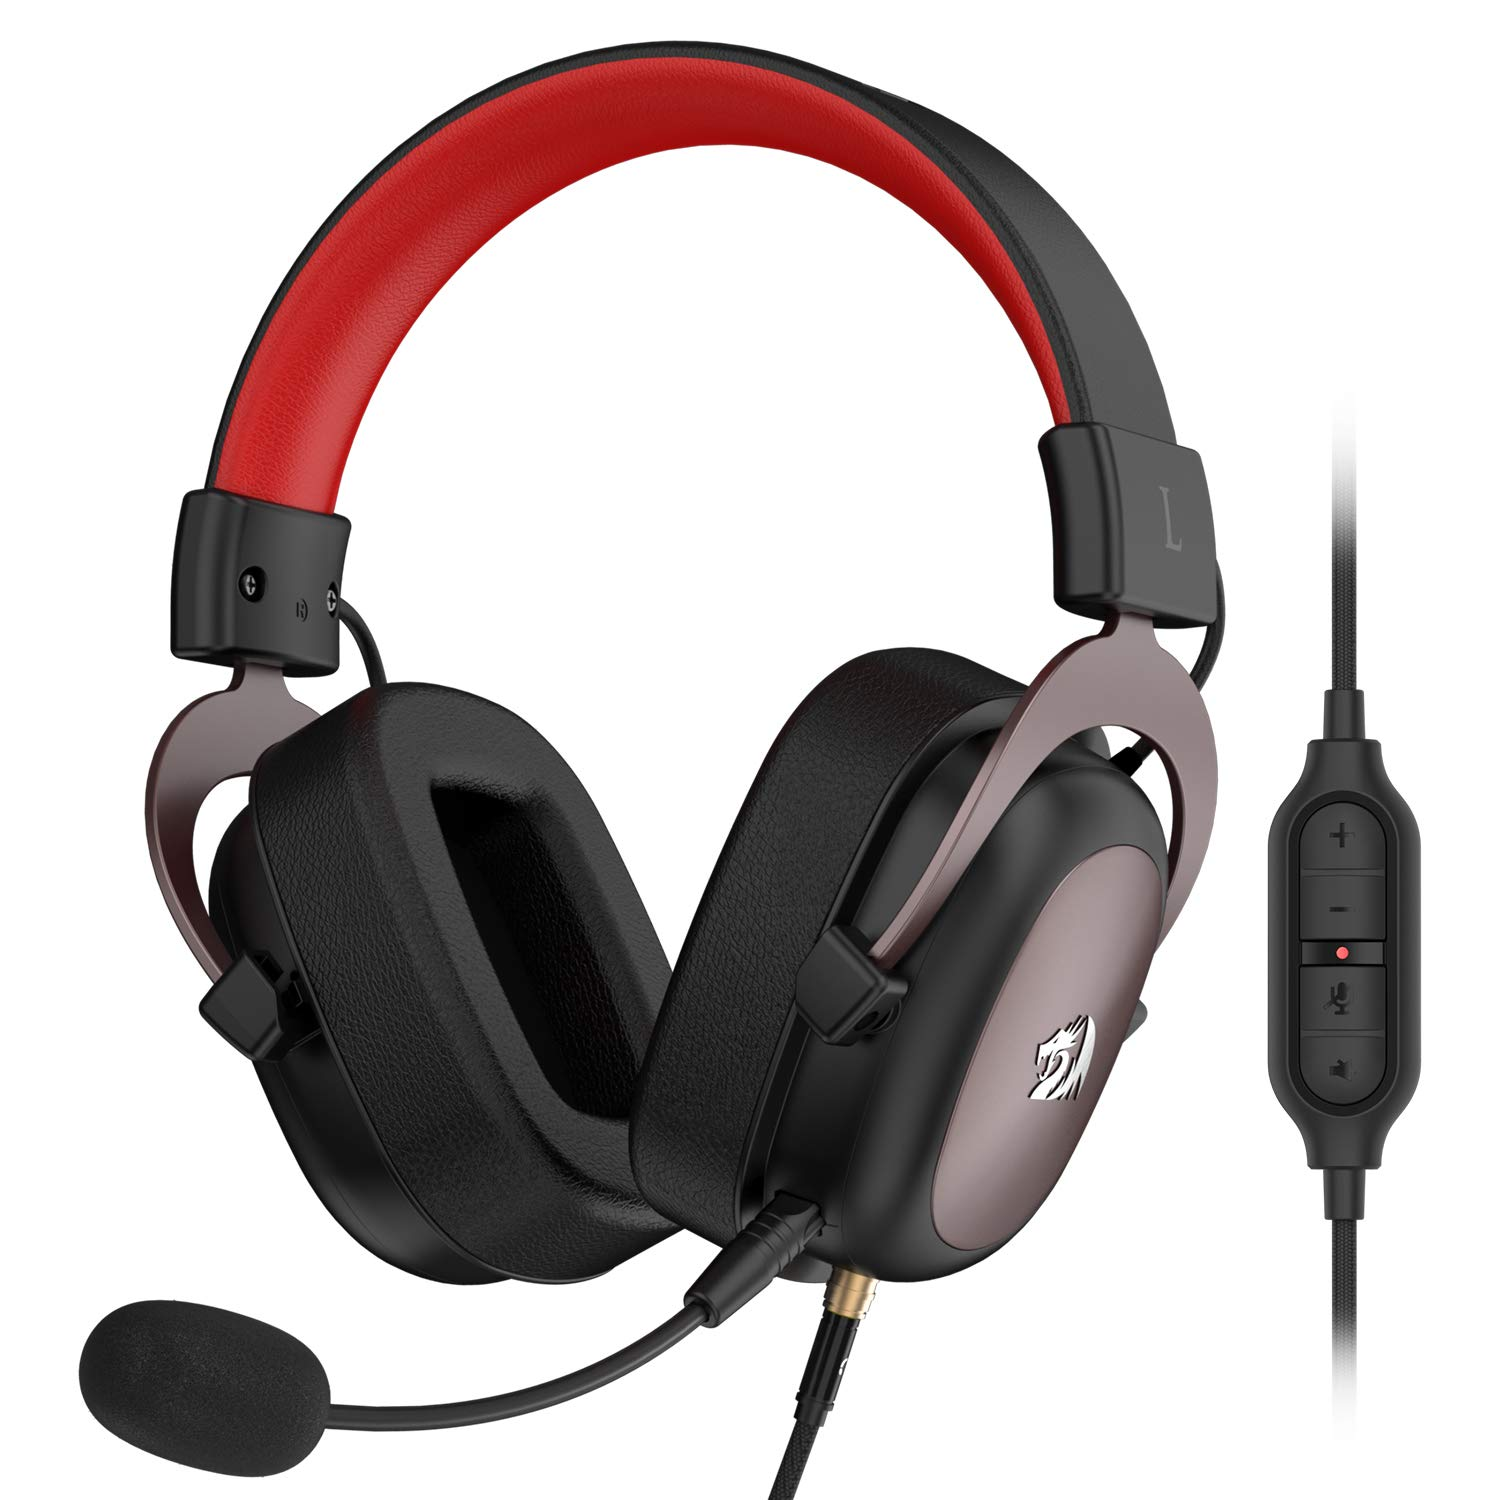 Redragon H510 Zeus Wired Gaming Headset - 7.1 Surround Sound - Memory Foam Ear Pads - 53MM Drivers - Detachable Microphone - Multi Platform Headphone - Works with PC/PS4 & Xbox One, Nintendo Switch by Redragon